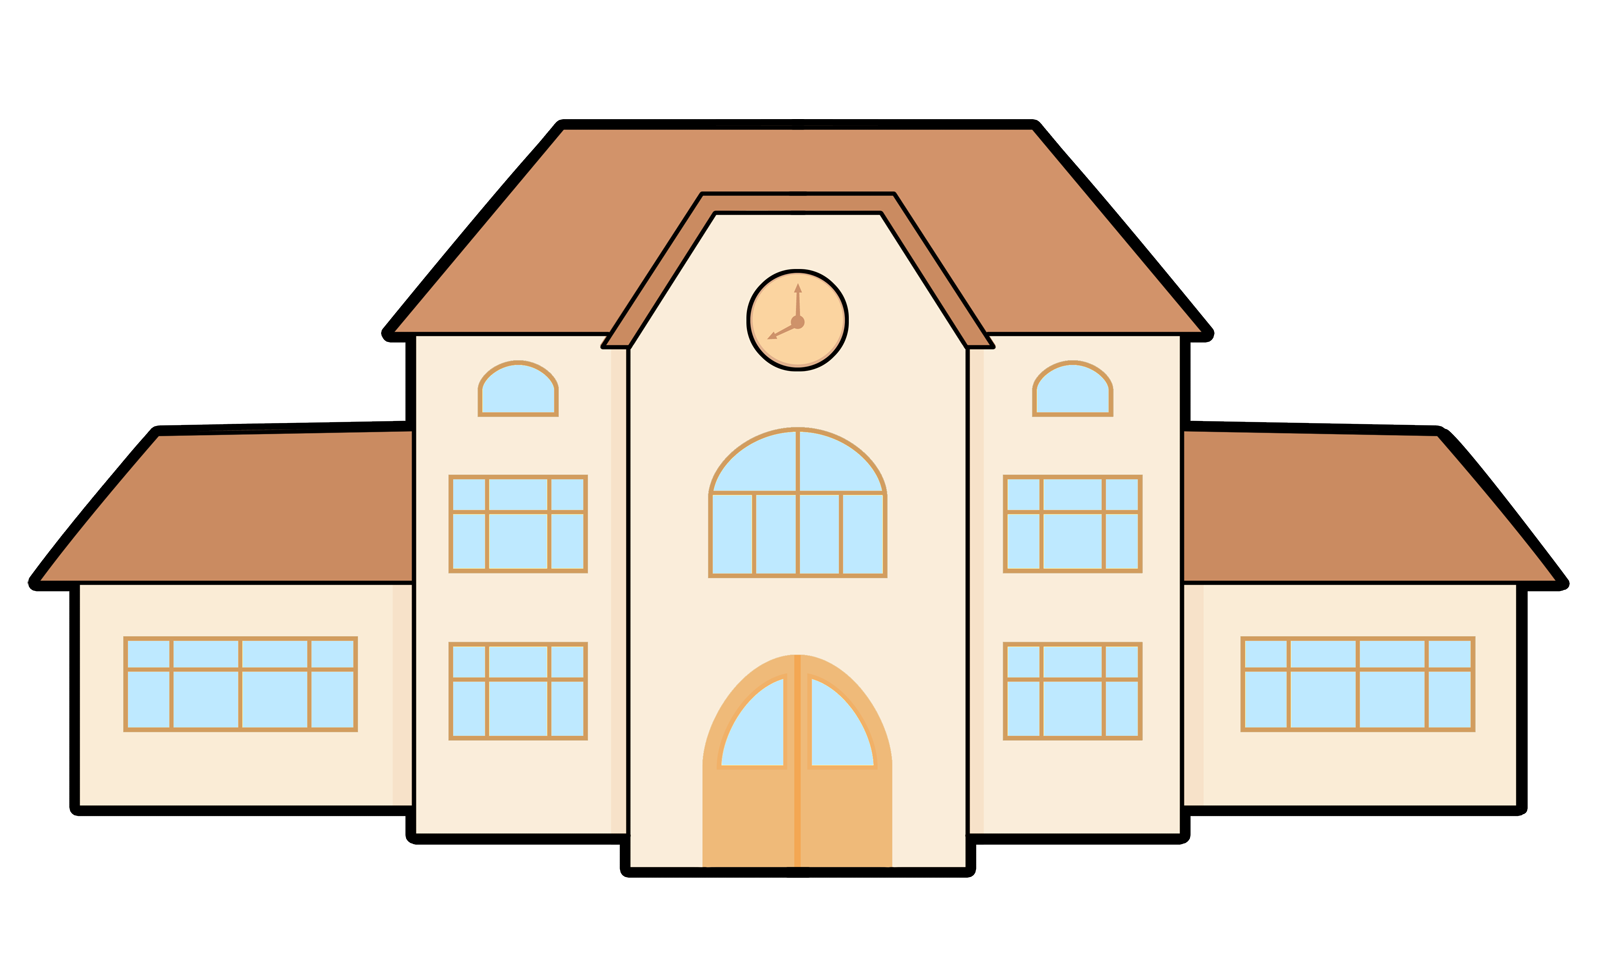 School building png. Transparent images pluspng clipart